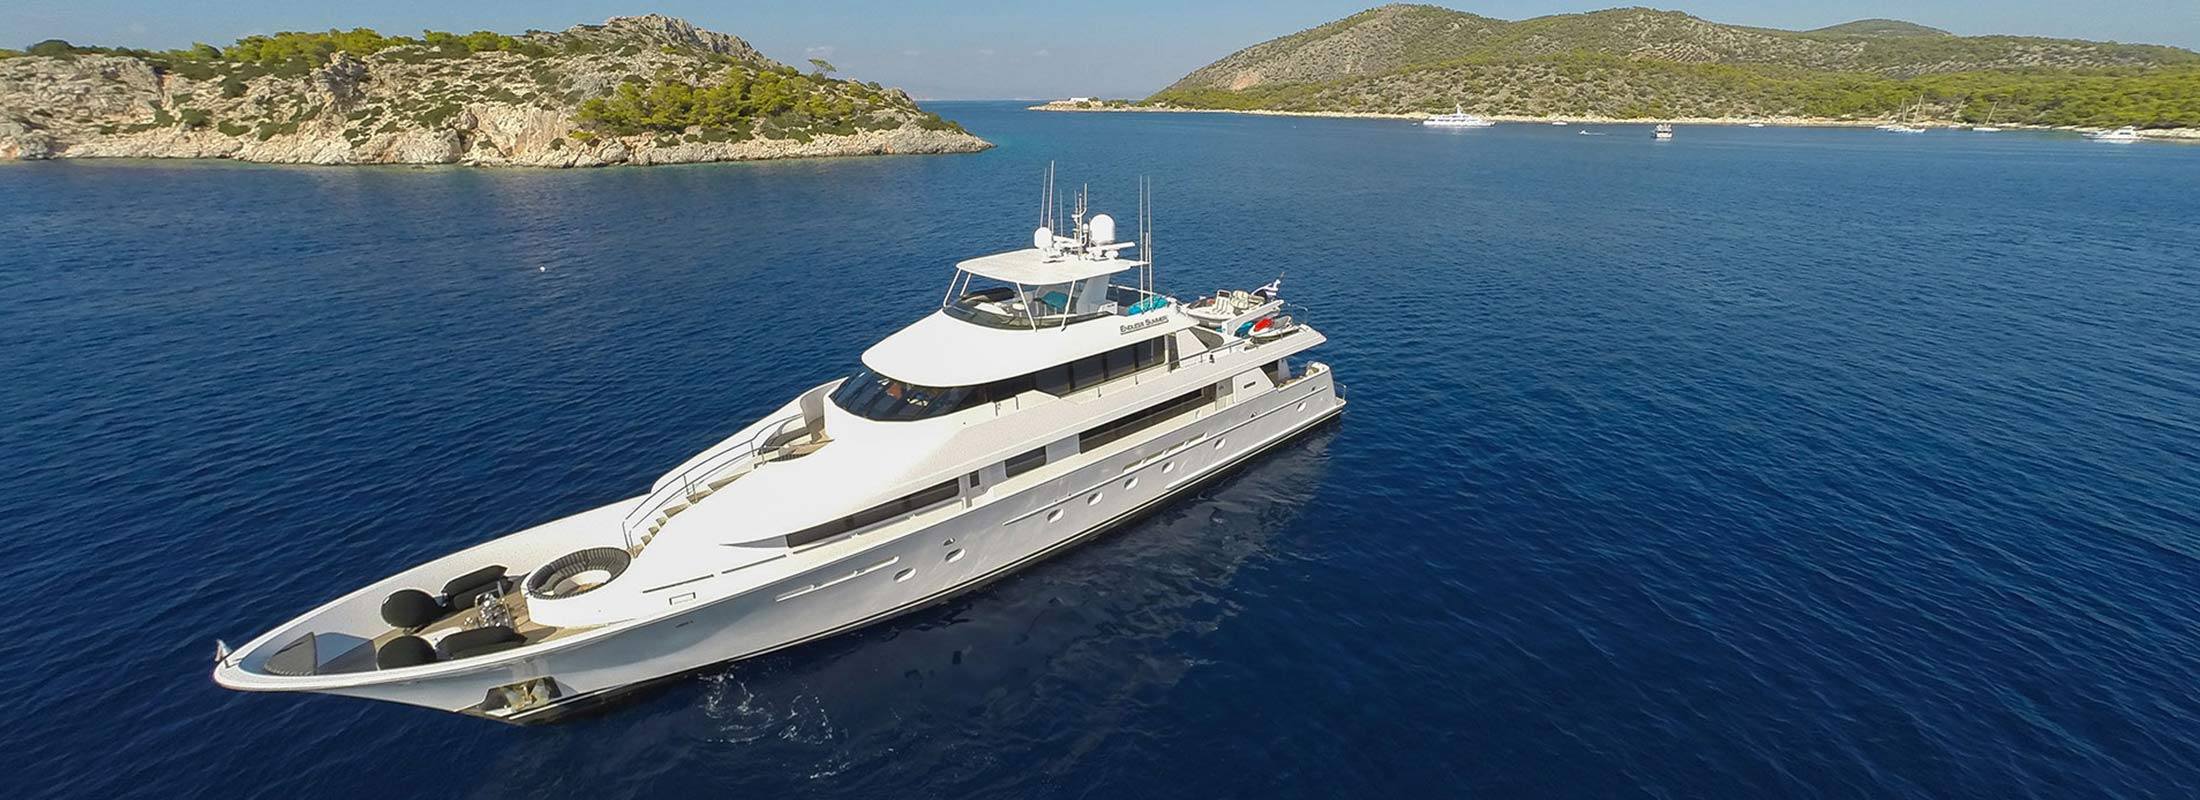 Endless Summer Motor Yacht for Charter Mediterranean slider 2